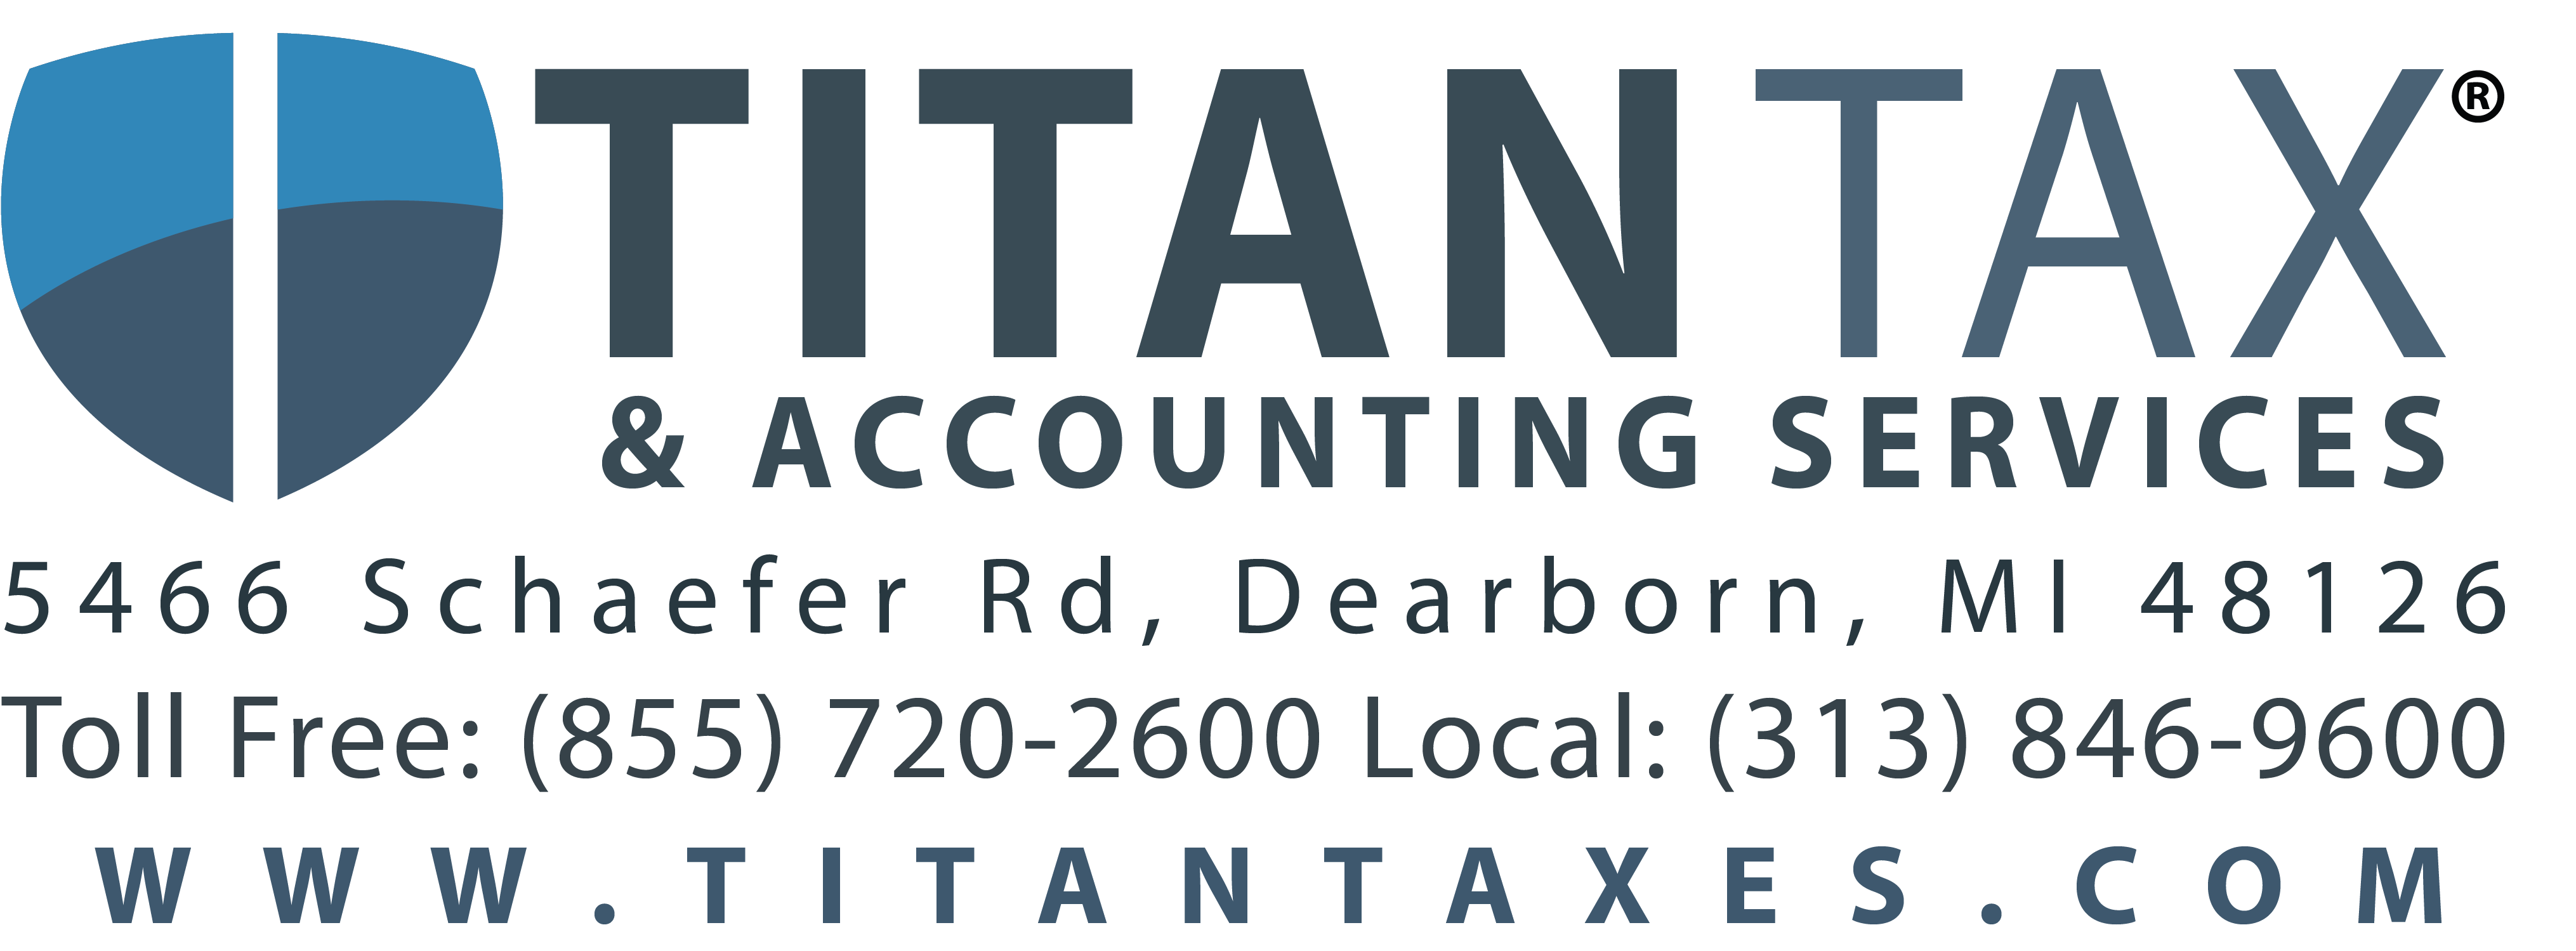 Hussein Khalil, EA  Titan Tax & Accounting Services